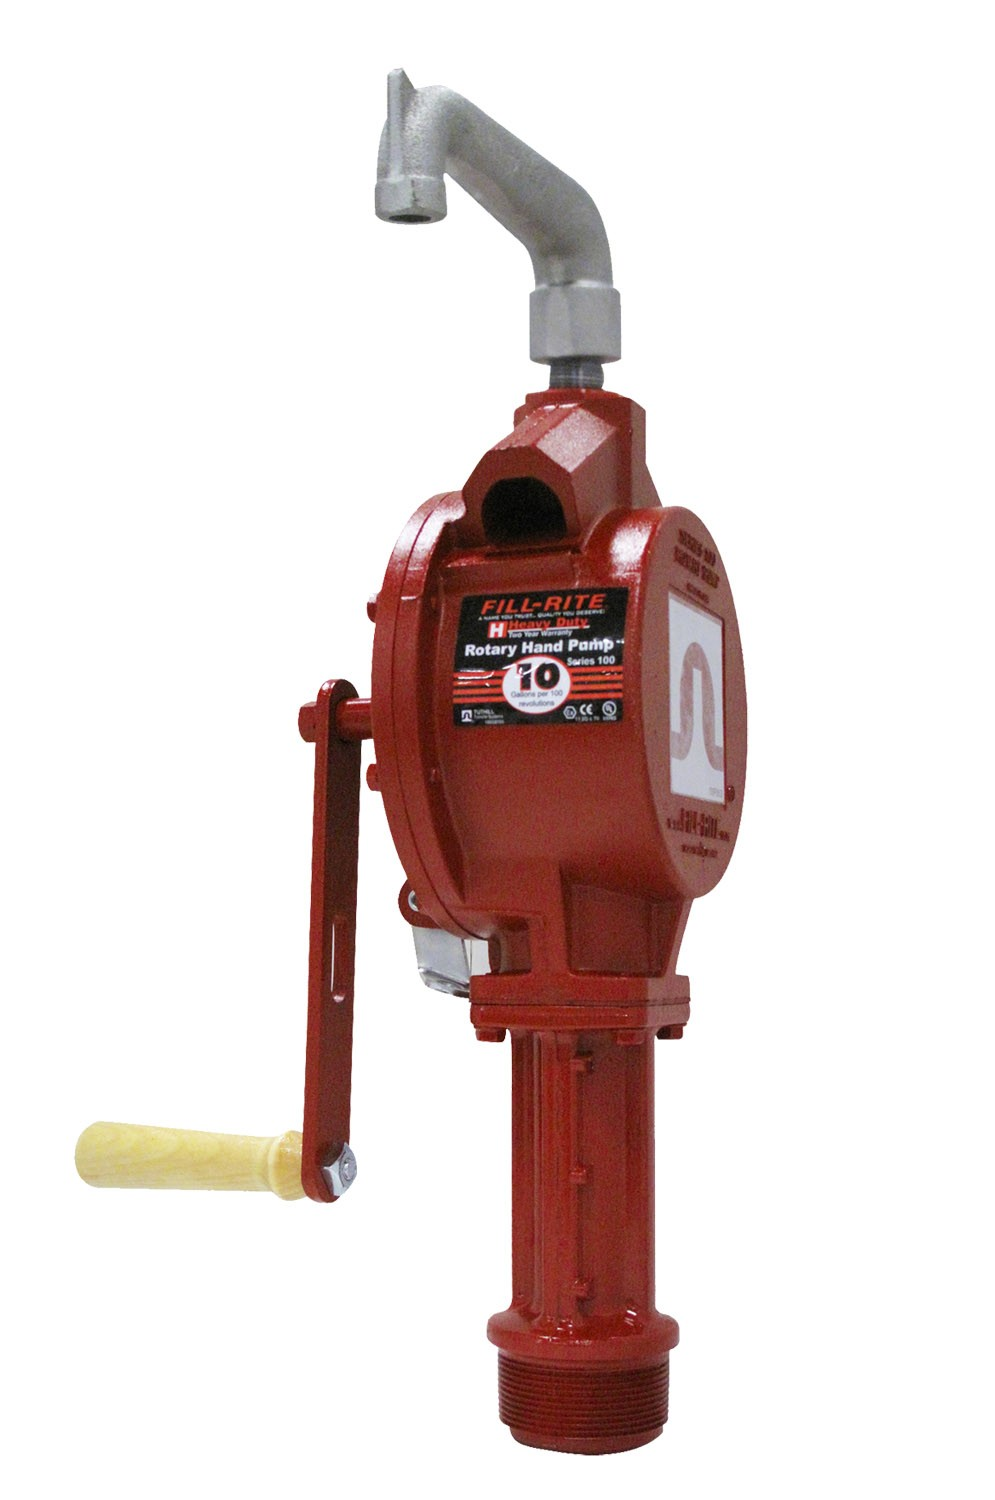 Fill-Rite Rotary Hand Gas Pump, Telescoping Steel Suction Pipe, Pail Spout